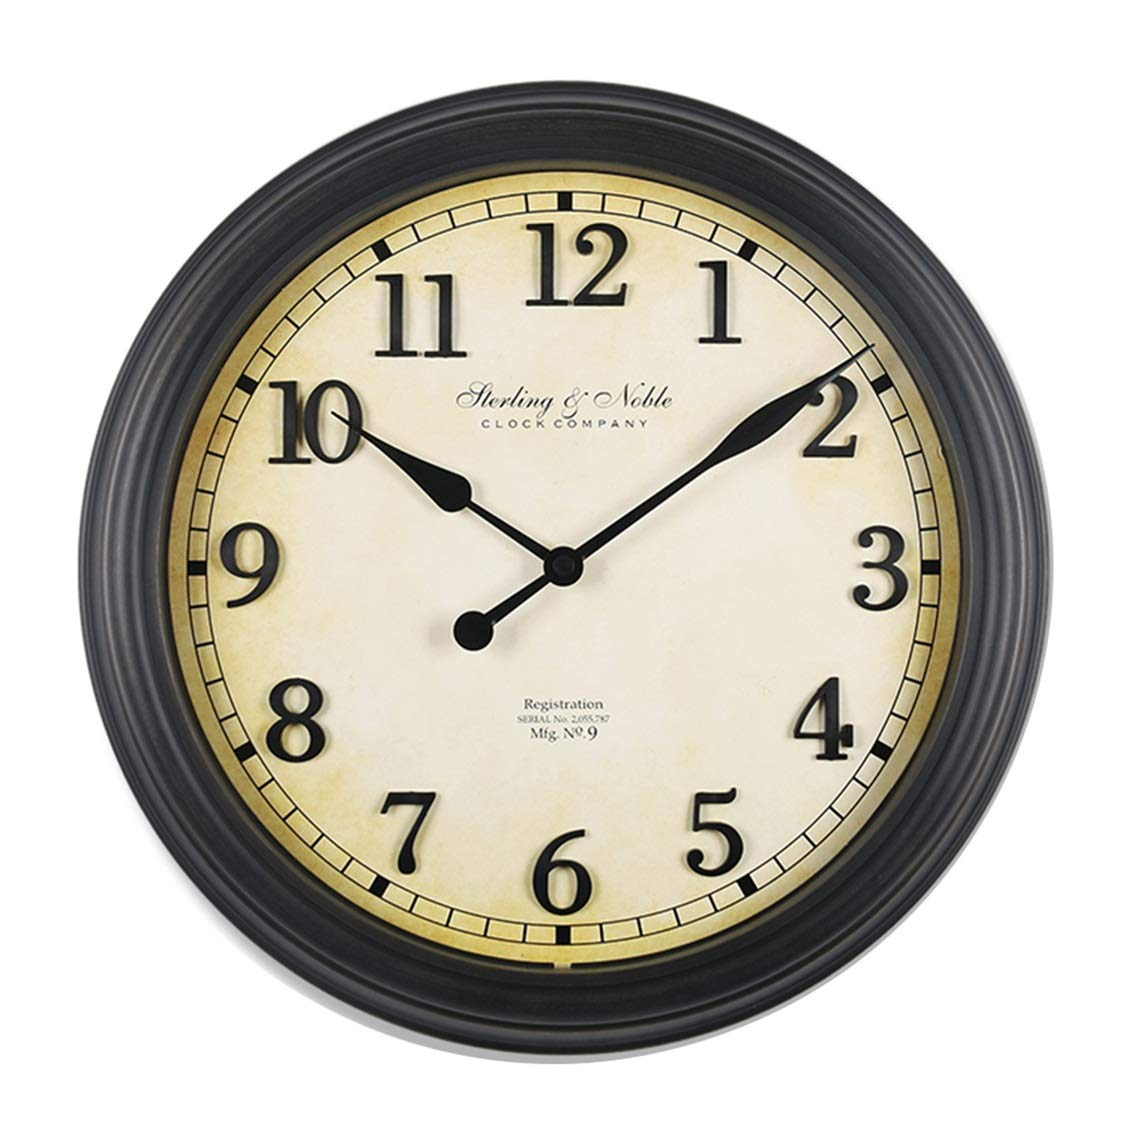 CLOCKZHJI Vintage Old Color Wall Clock, Silent Non Ticking Quality Quartz Battery Operated 16 Inch /39.5 cm Square Easy to Read Home/Office/School Clock by CLOCKZHJI